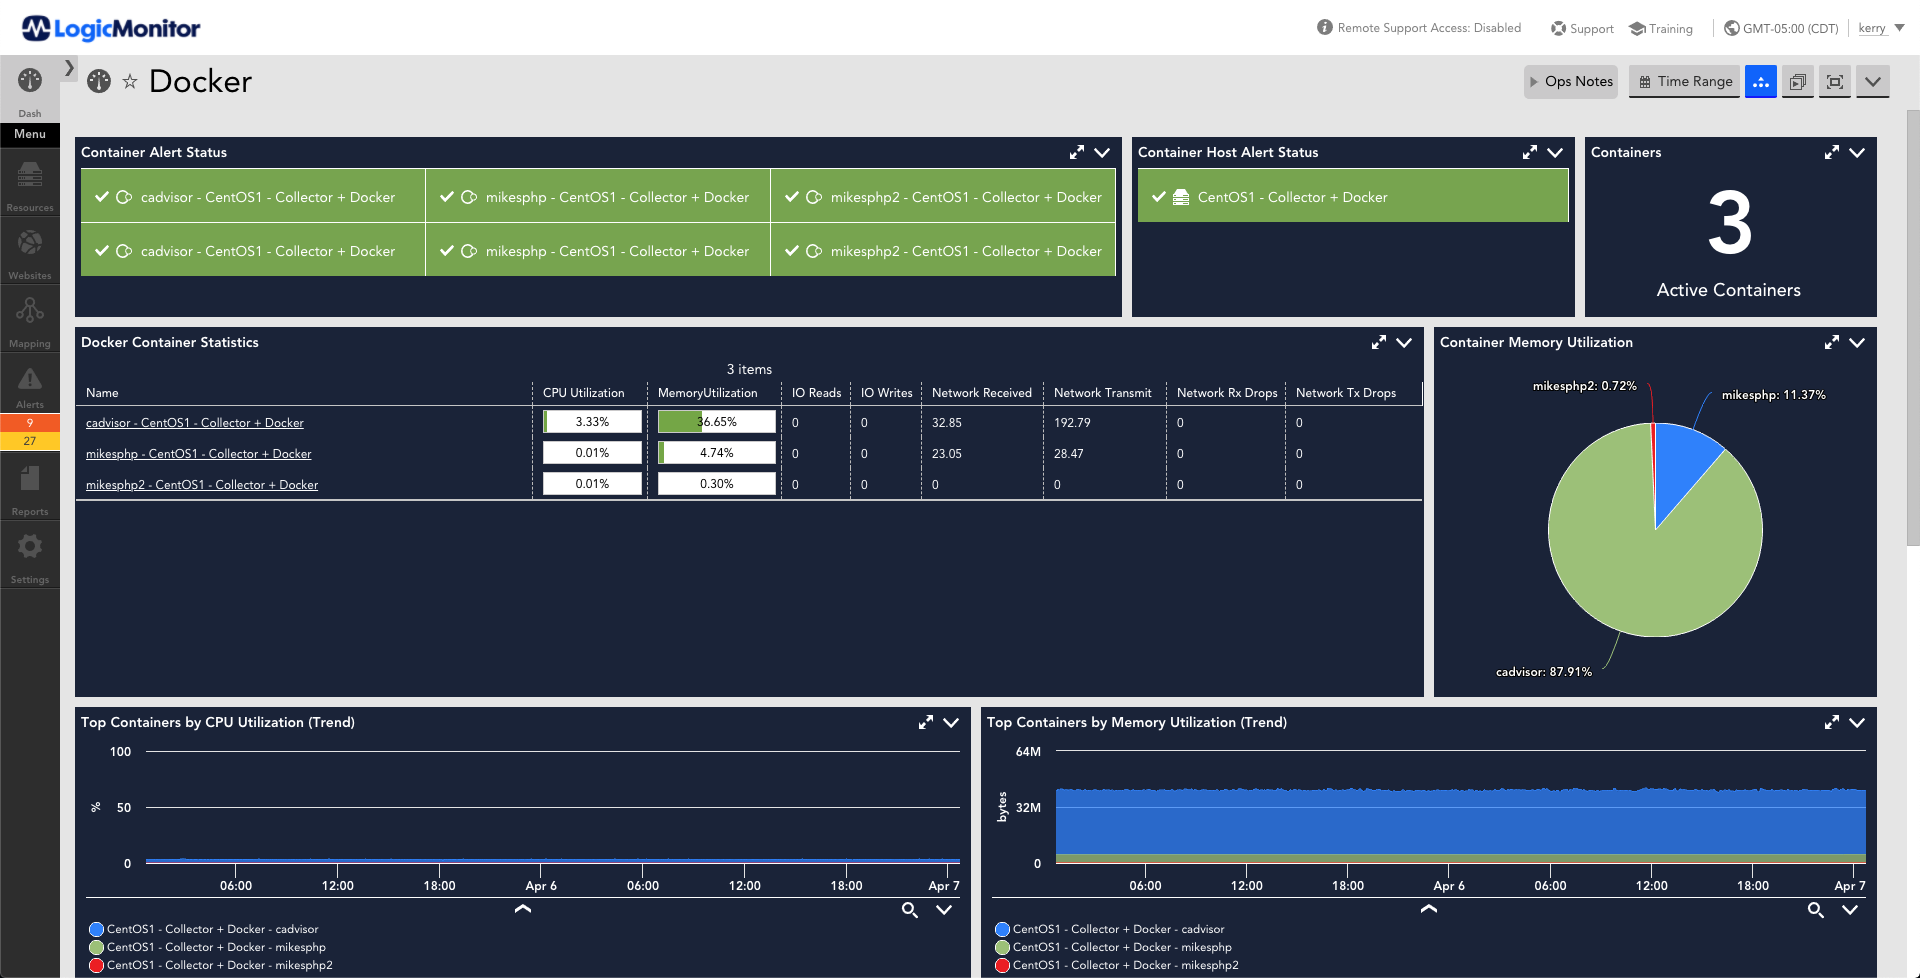 http://This%20dashboard%20provides%20status%20of%20Docker%20objects.%20The%20metrics%20displayed%20are%20alert%20status,%20number%20of%20containers,%20container%20statistics,%20container%20memory%20utilization,%20CPU%20utilization%20over%20time,%20Memory%20utilization%20over%20time